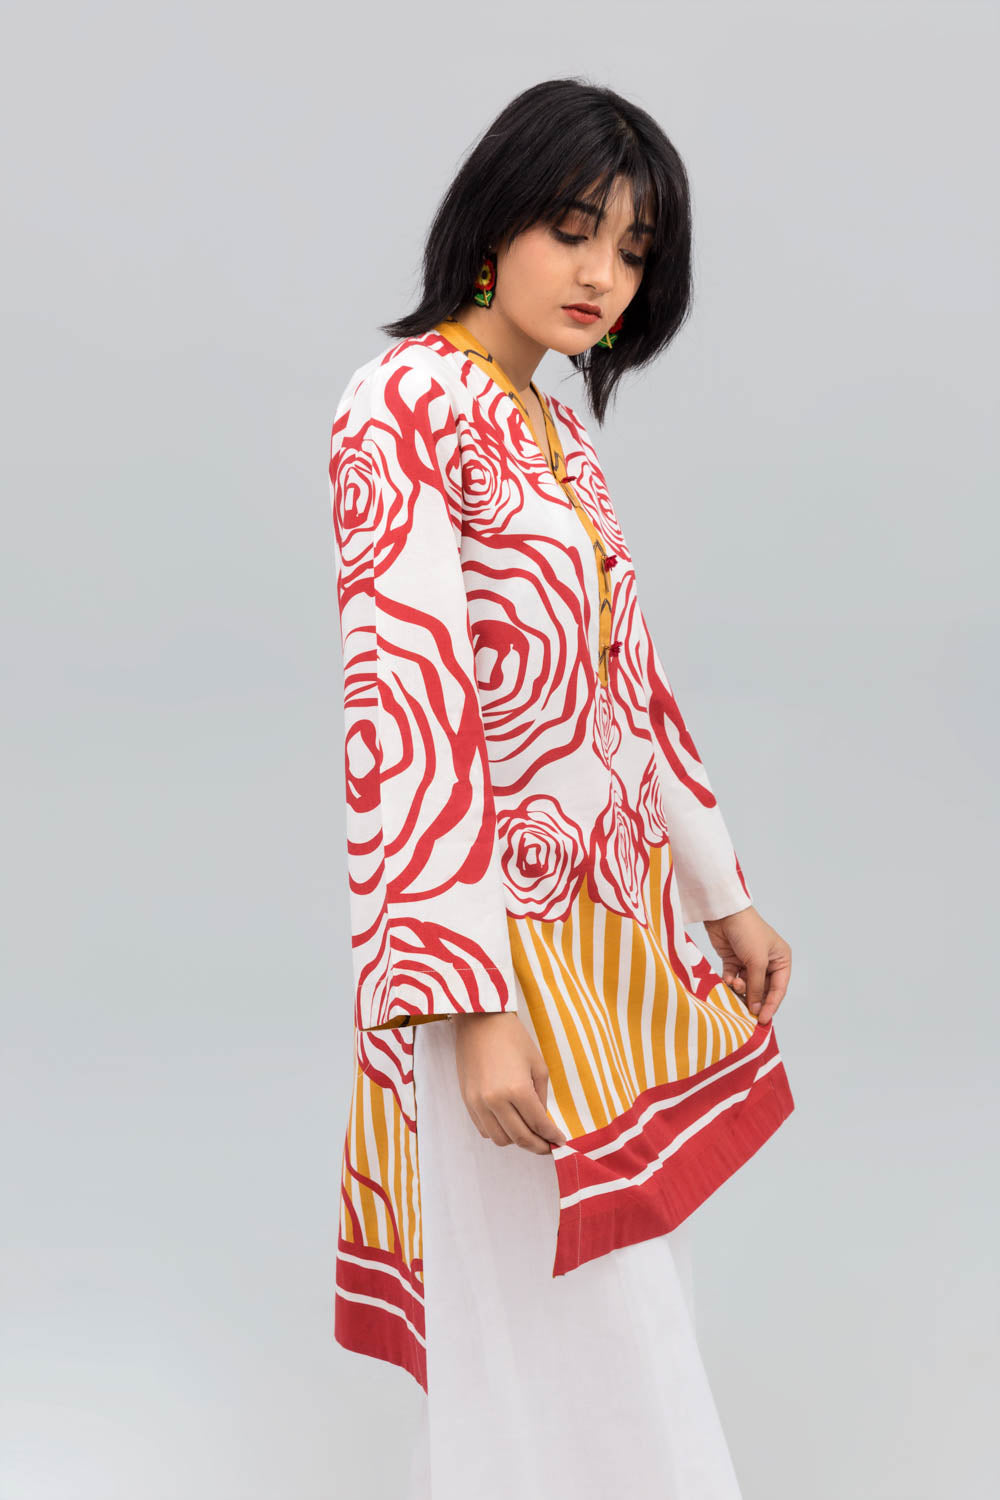 Red & White Rosy Fusion Printed Shirt In 100% Cotton